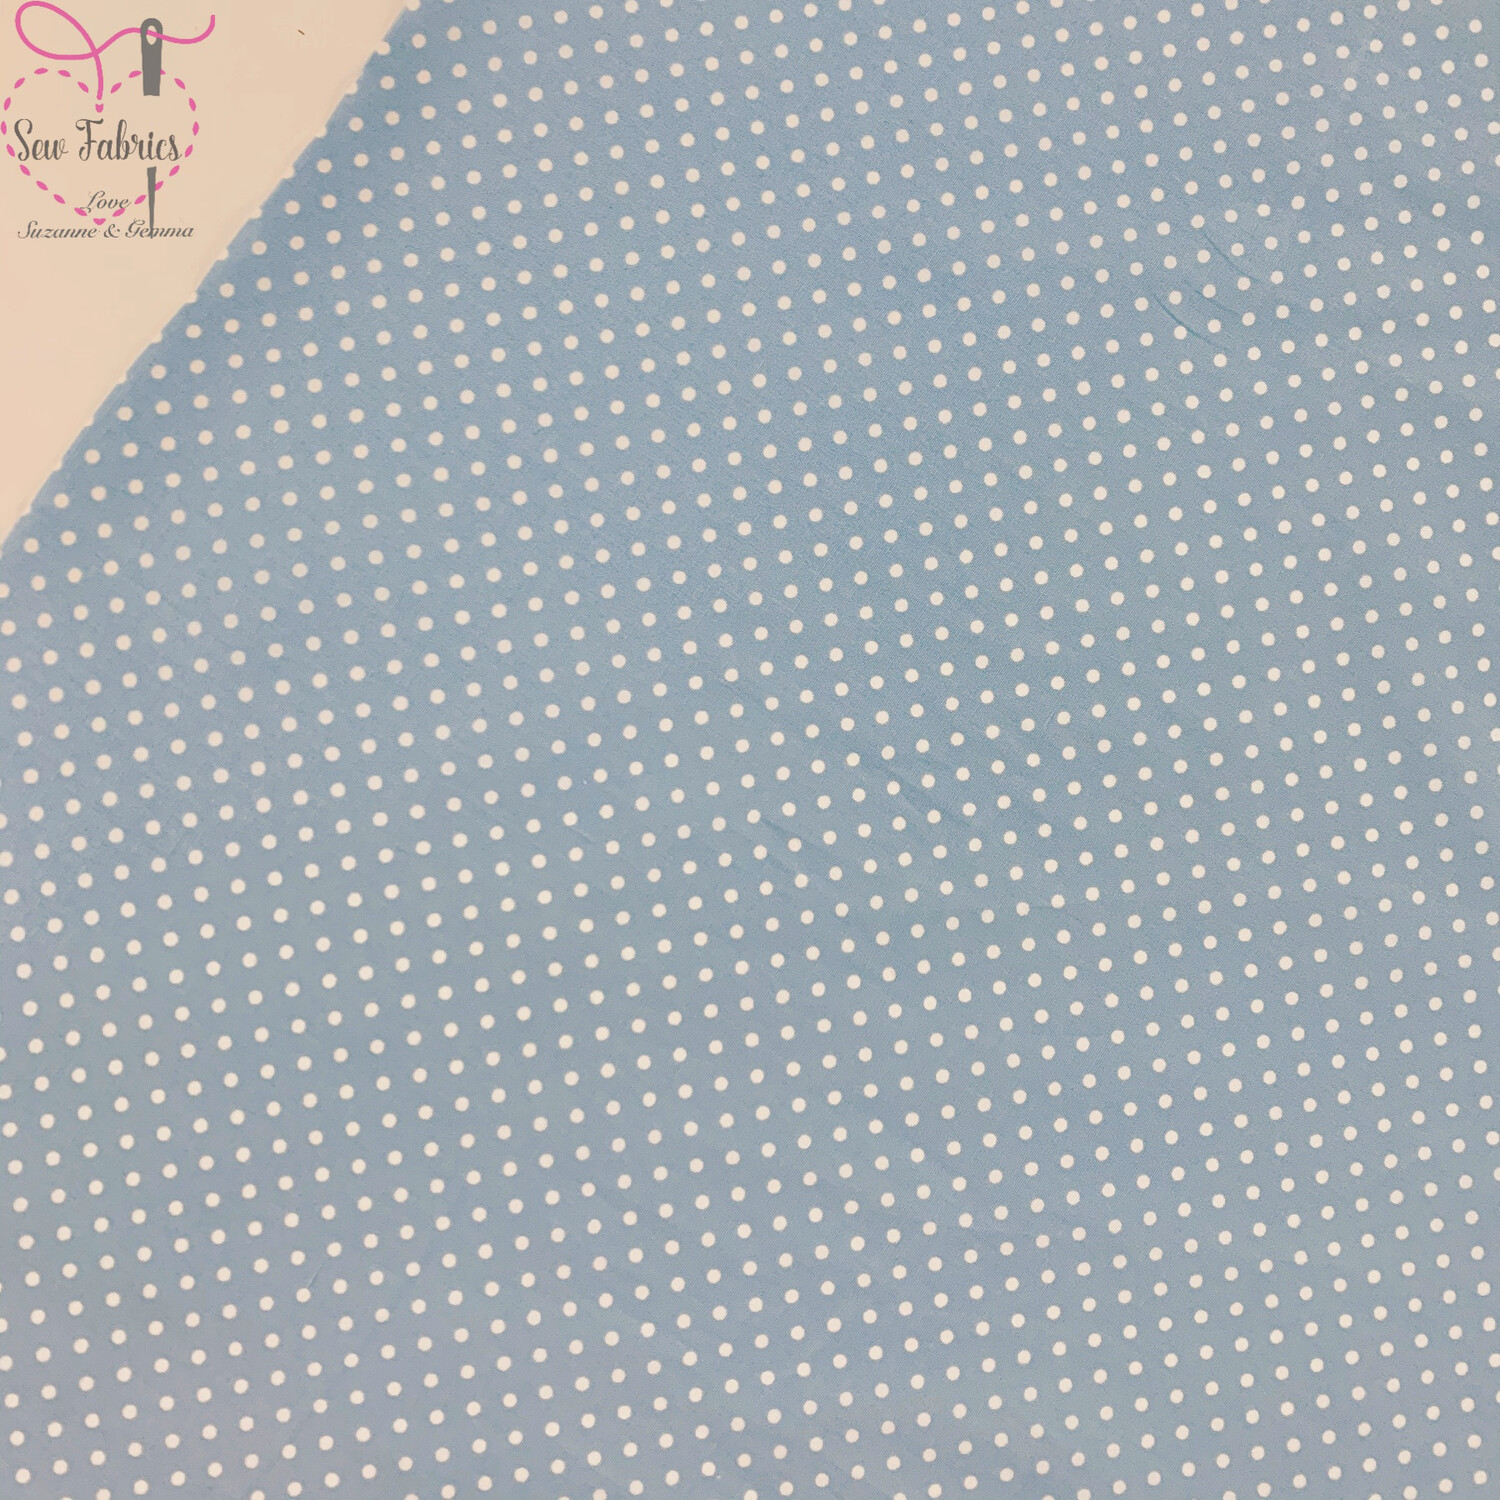 Rose and Hubble Pale Blue Polka Dot Fabric 100% Cotton Poplin Spot Geometric Material